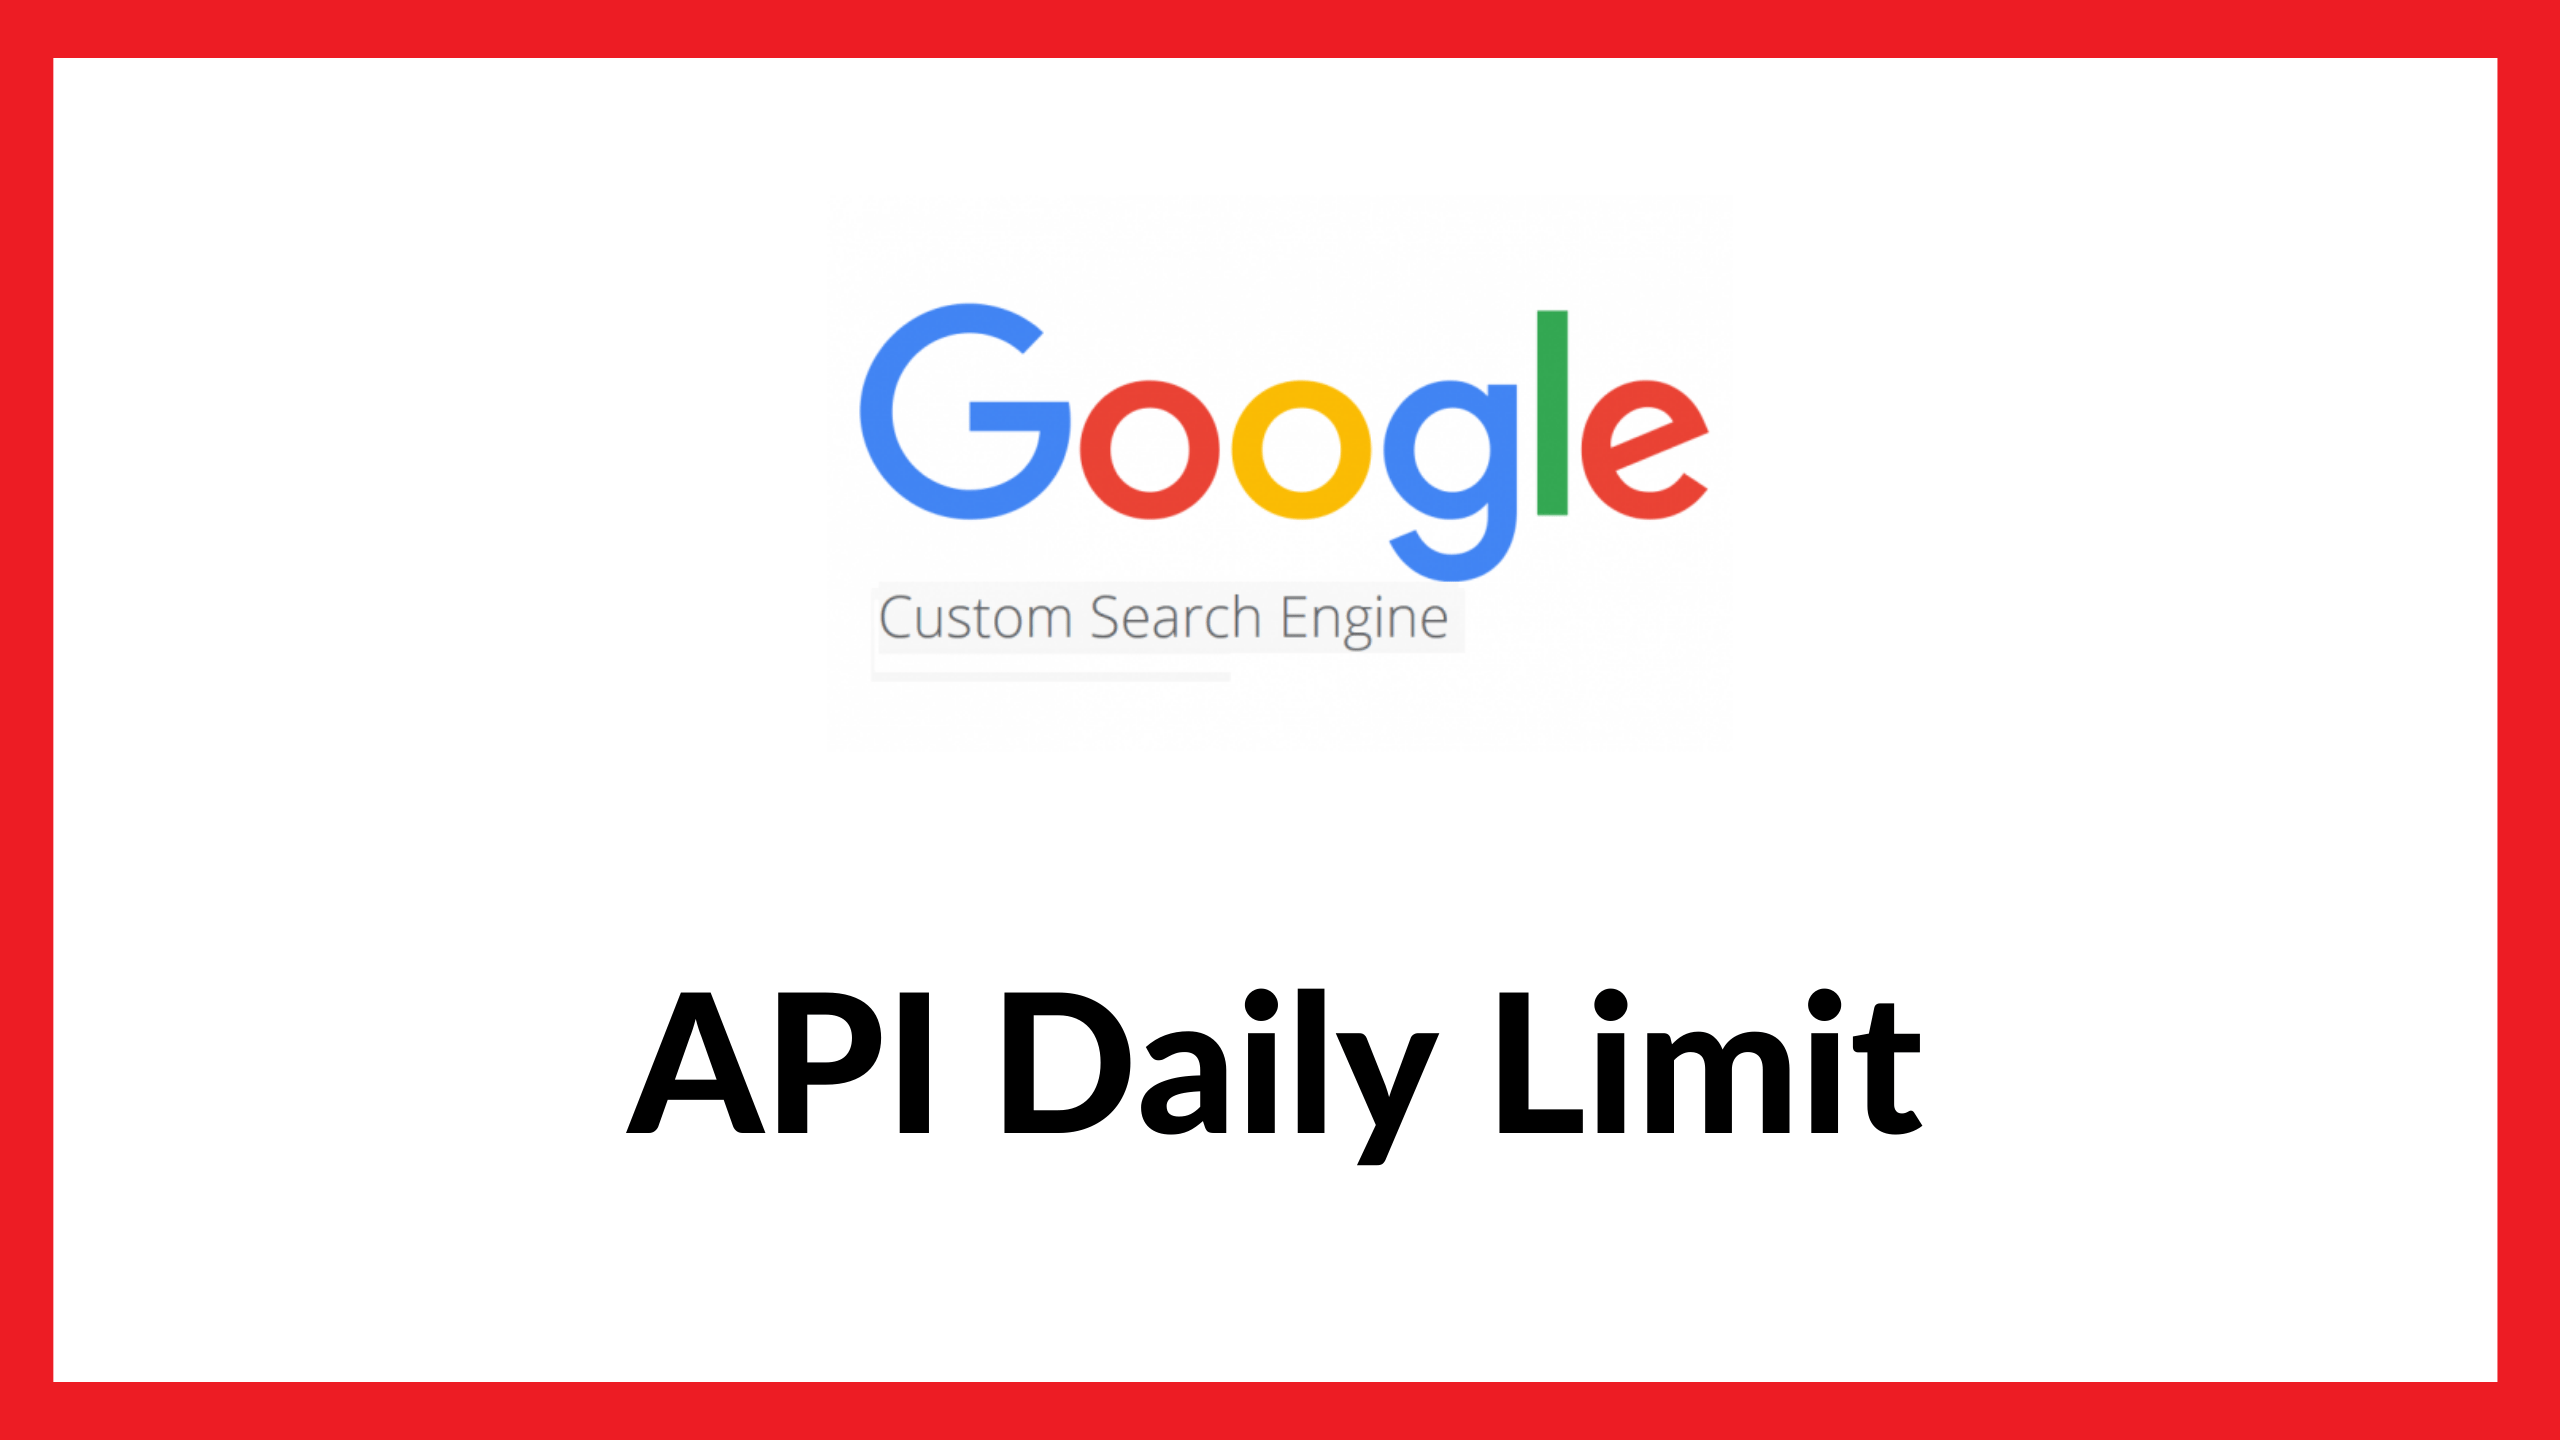 Google Custom Search api daily limit